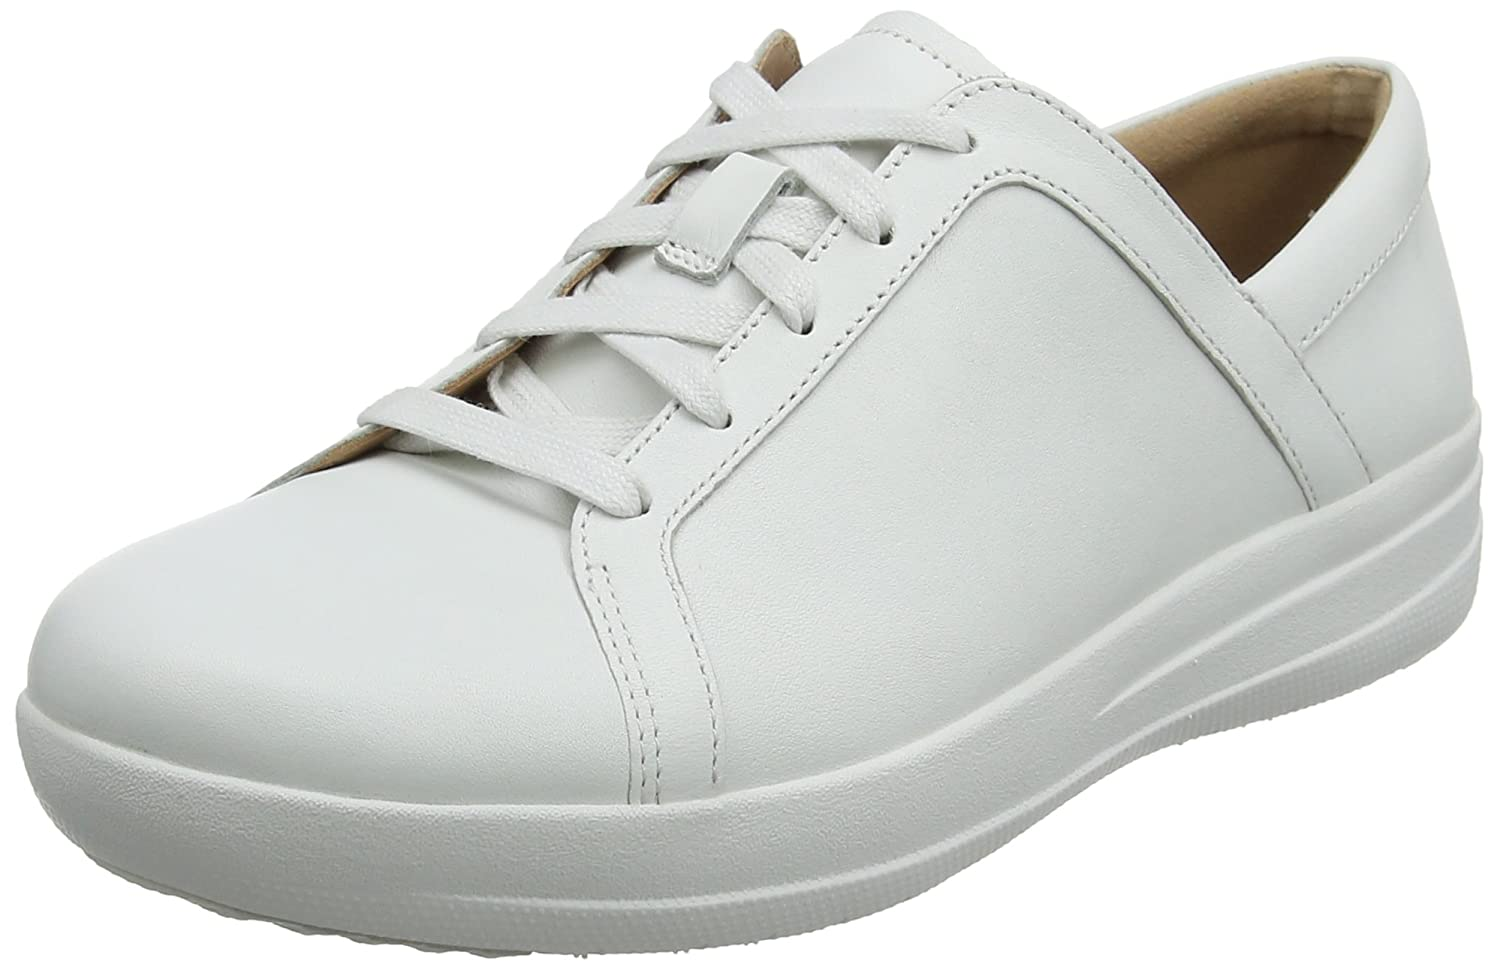 TALLA 38 EU. Fitflop F-Sporty II Lace Up Sneakers-Leather, Zapatillas para Mujer